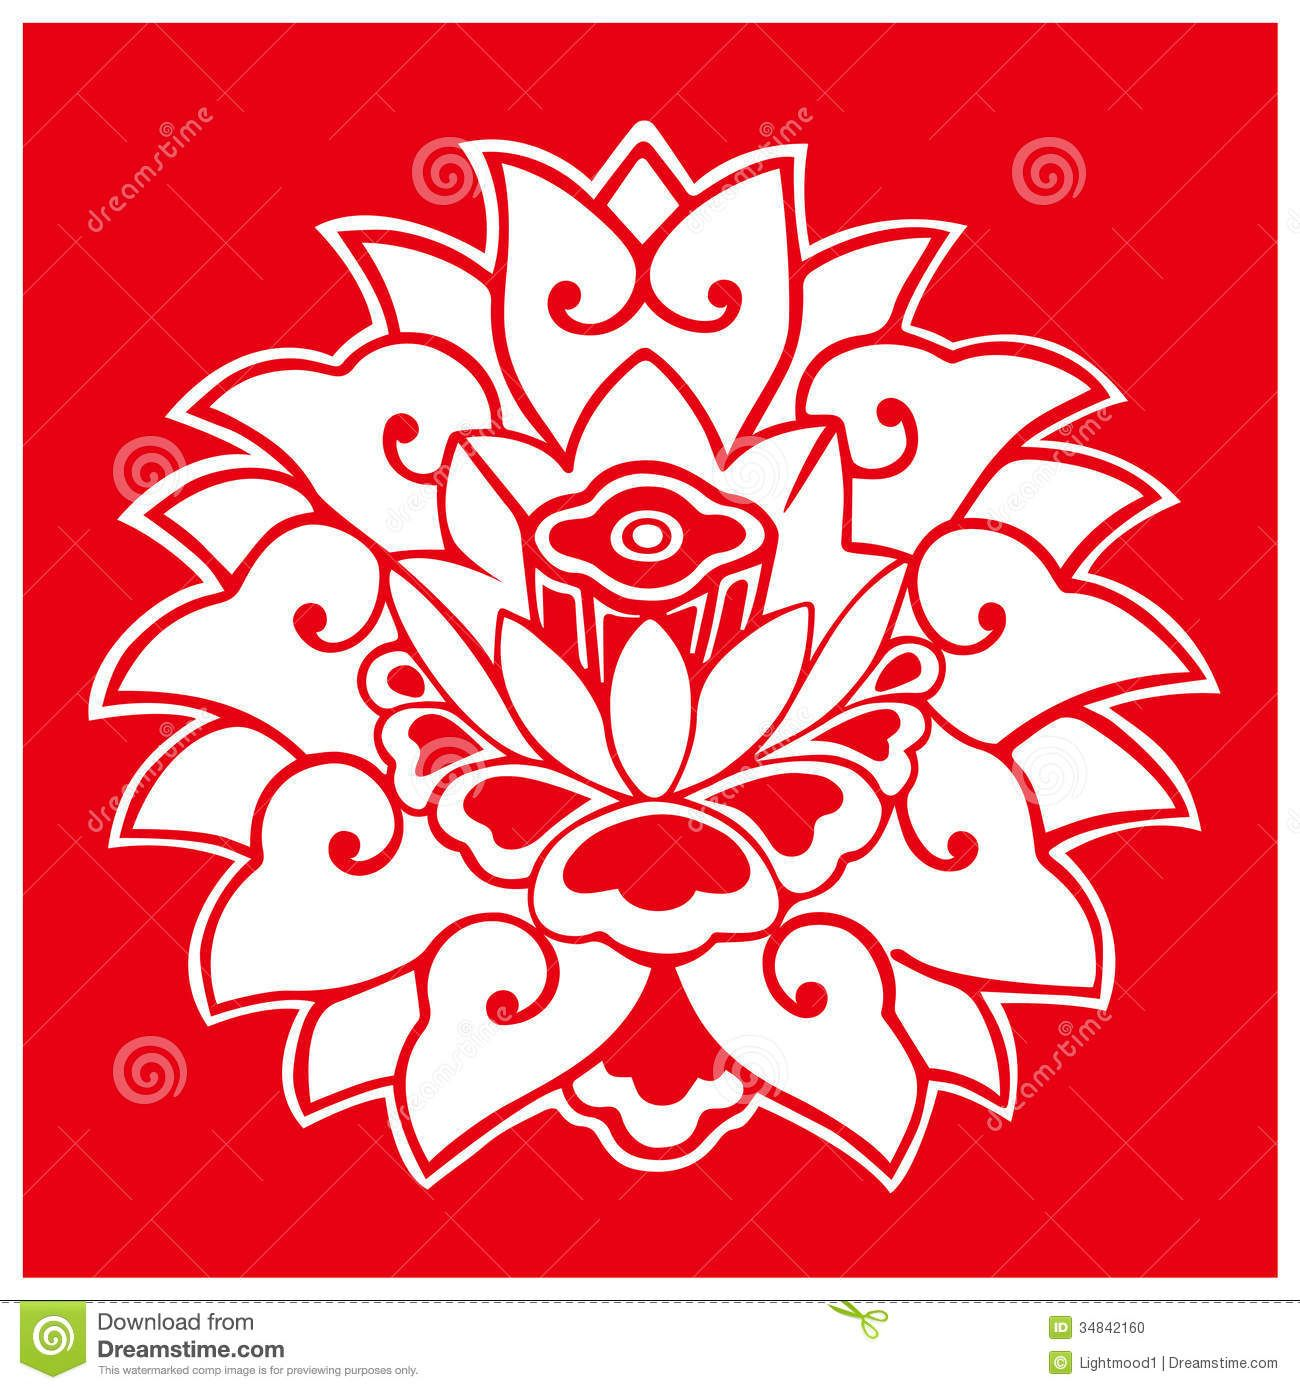 chinese symbols and meanings circle - Google Search ...